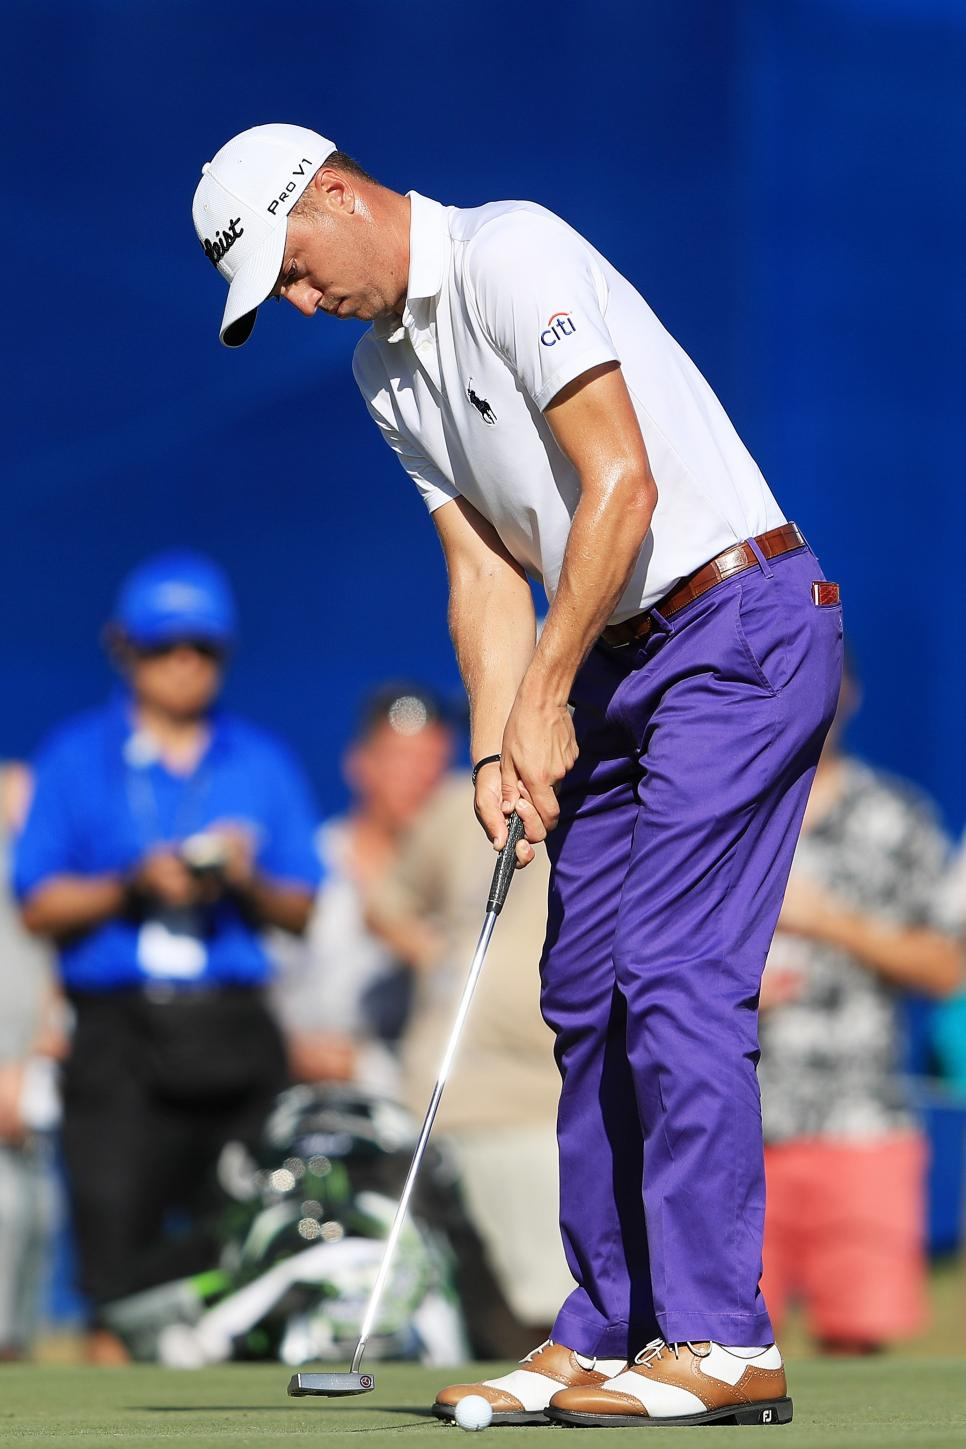 Justin-Thomas-Sony-Second-Round.jpg